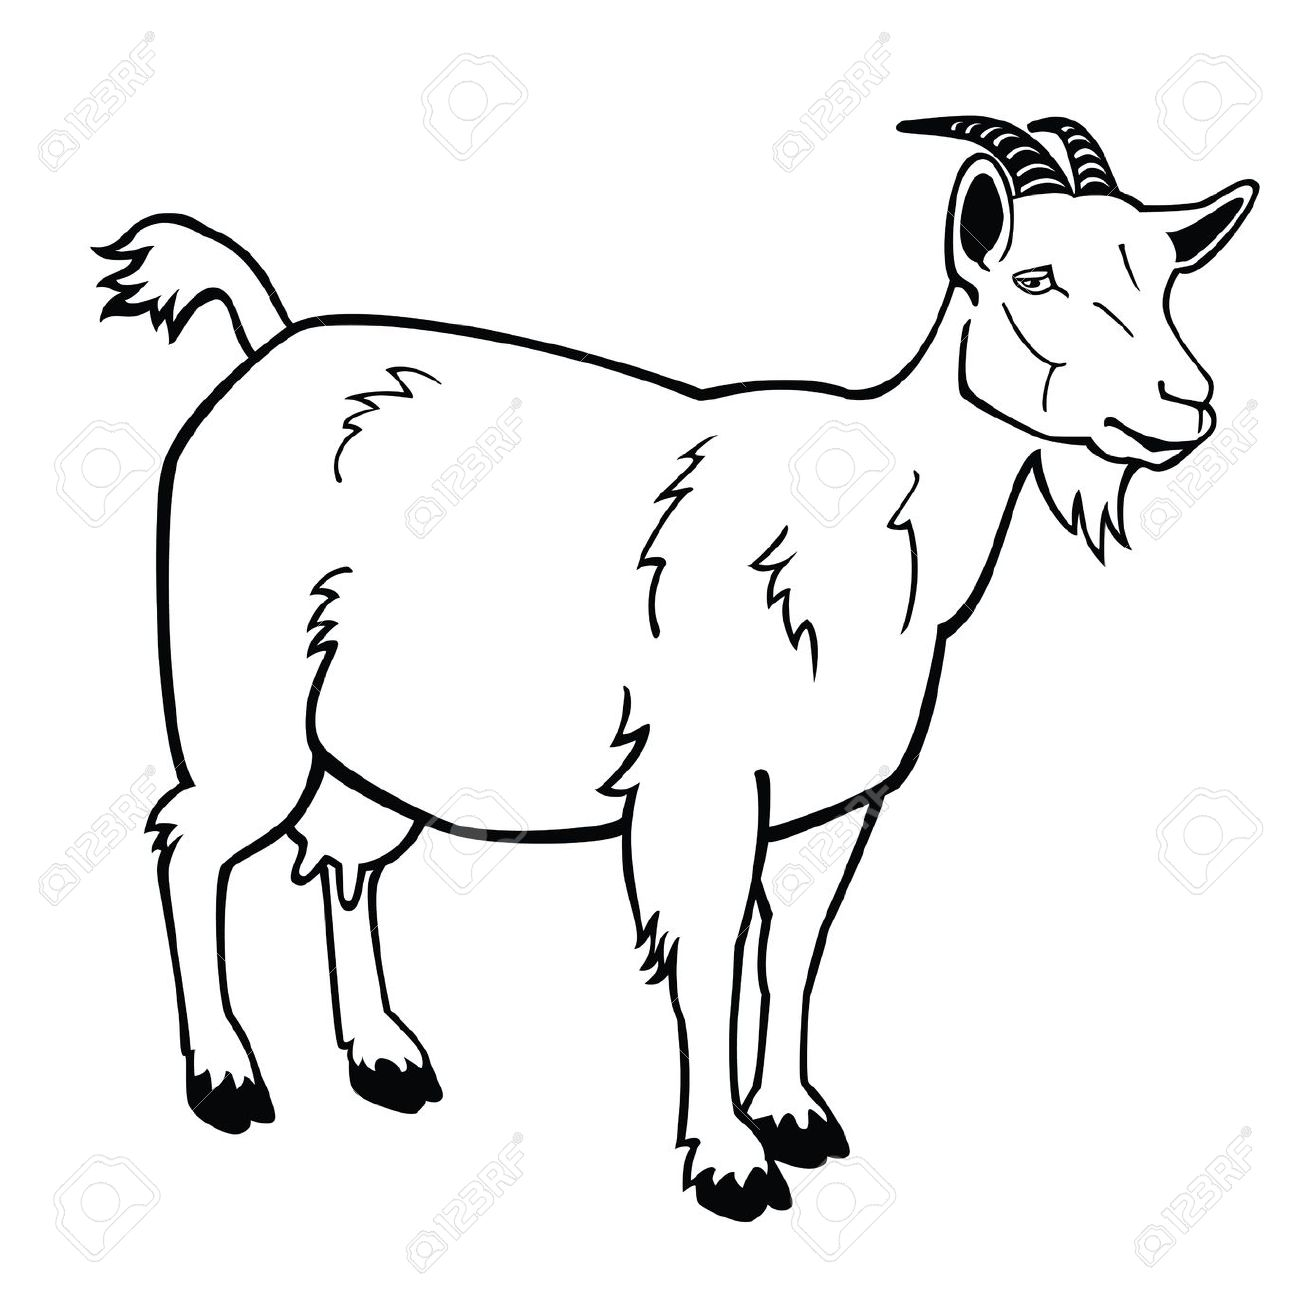 Black and white goat clipart.